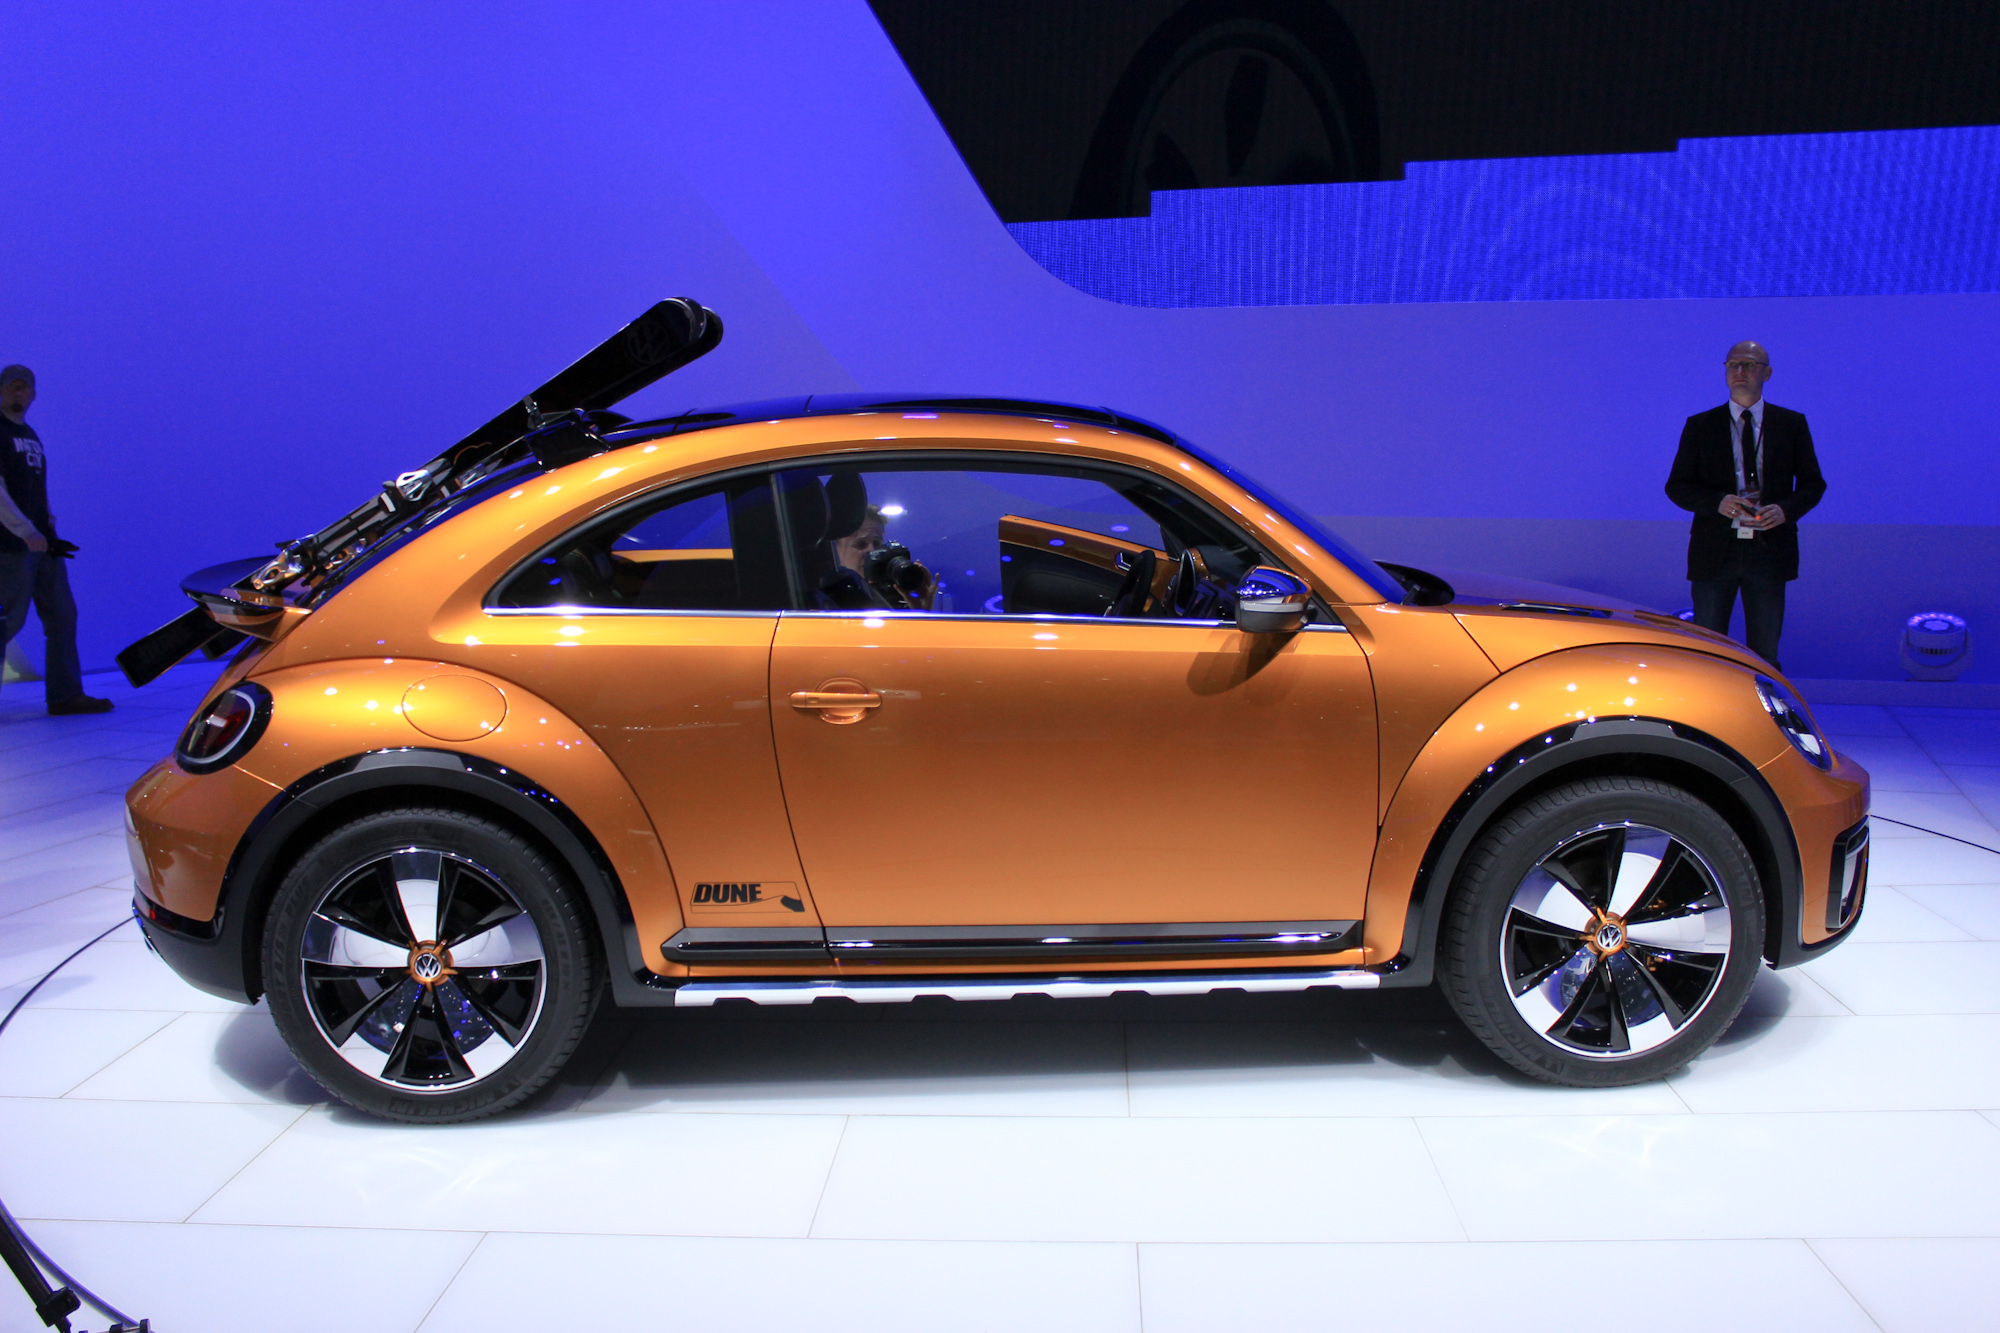 2020 Vw Beetle Dune Concept and Review